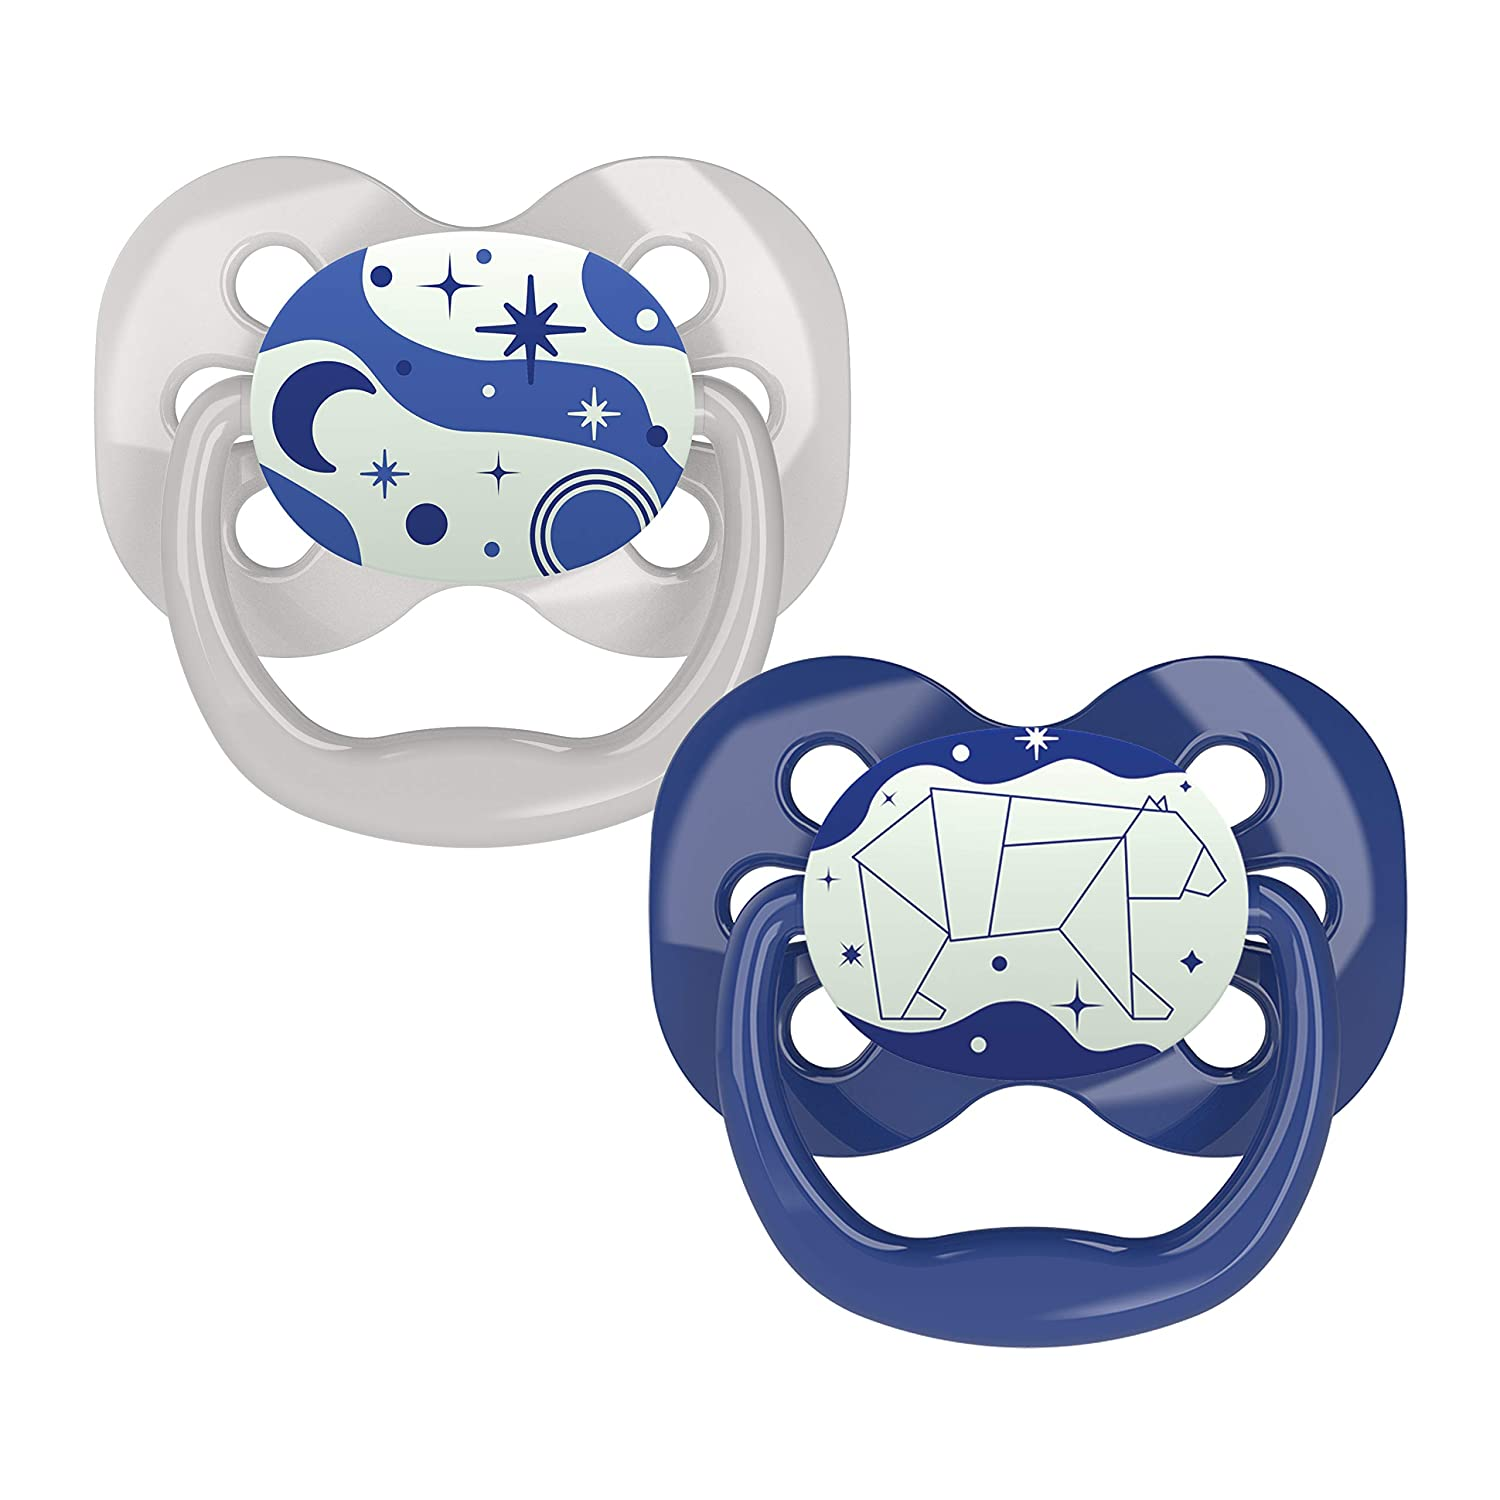 Dr. Browns Advantage Glow-in-The-Dark 2 Piece Stage 1 Pacifiers, Blue, 0-6 Months